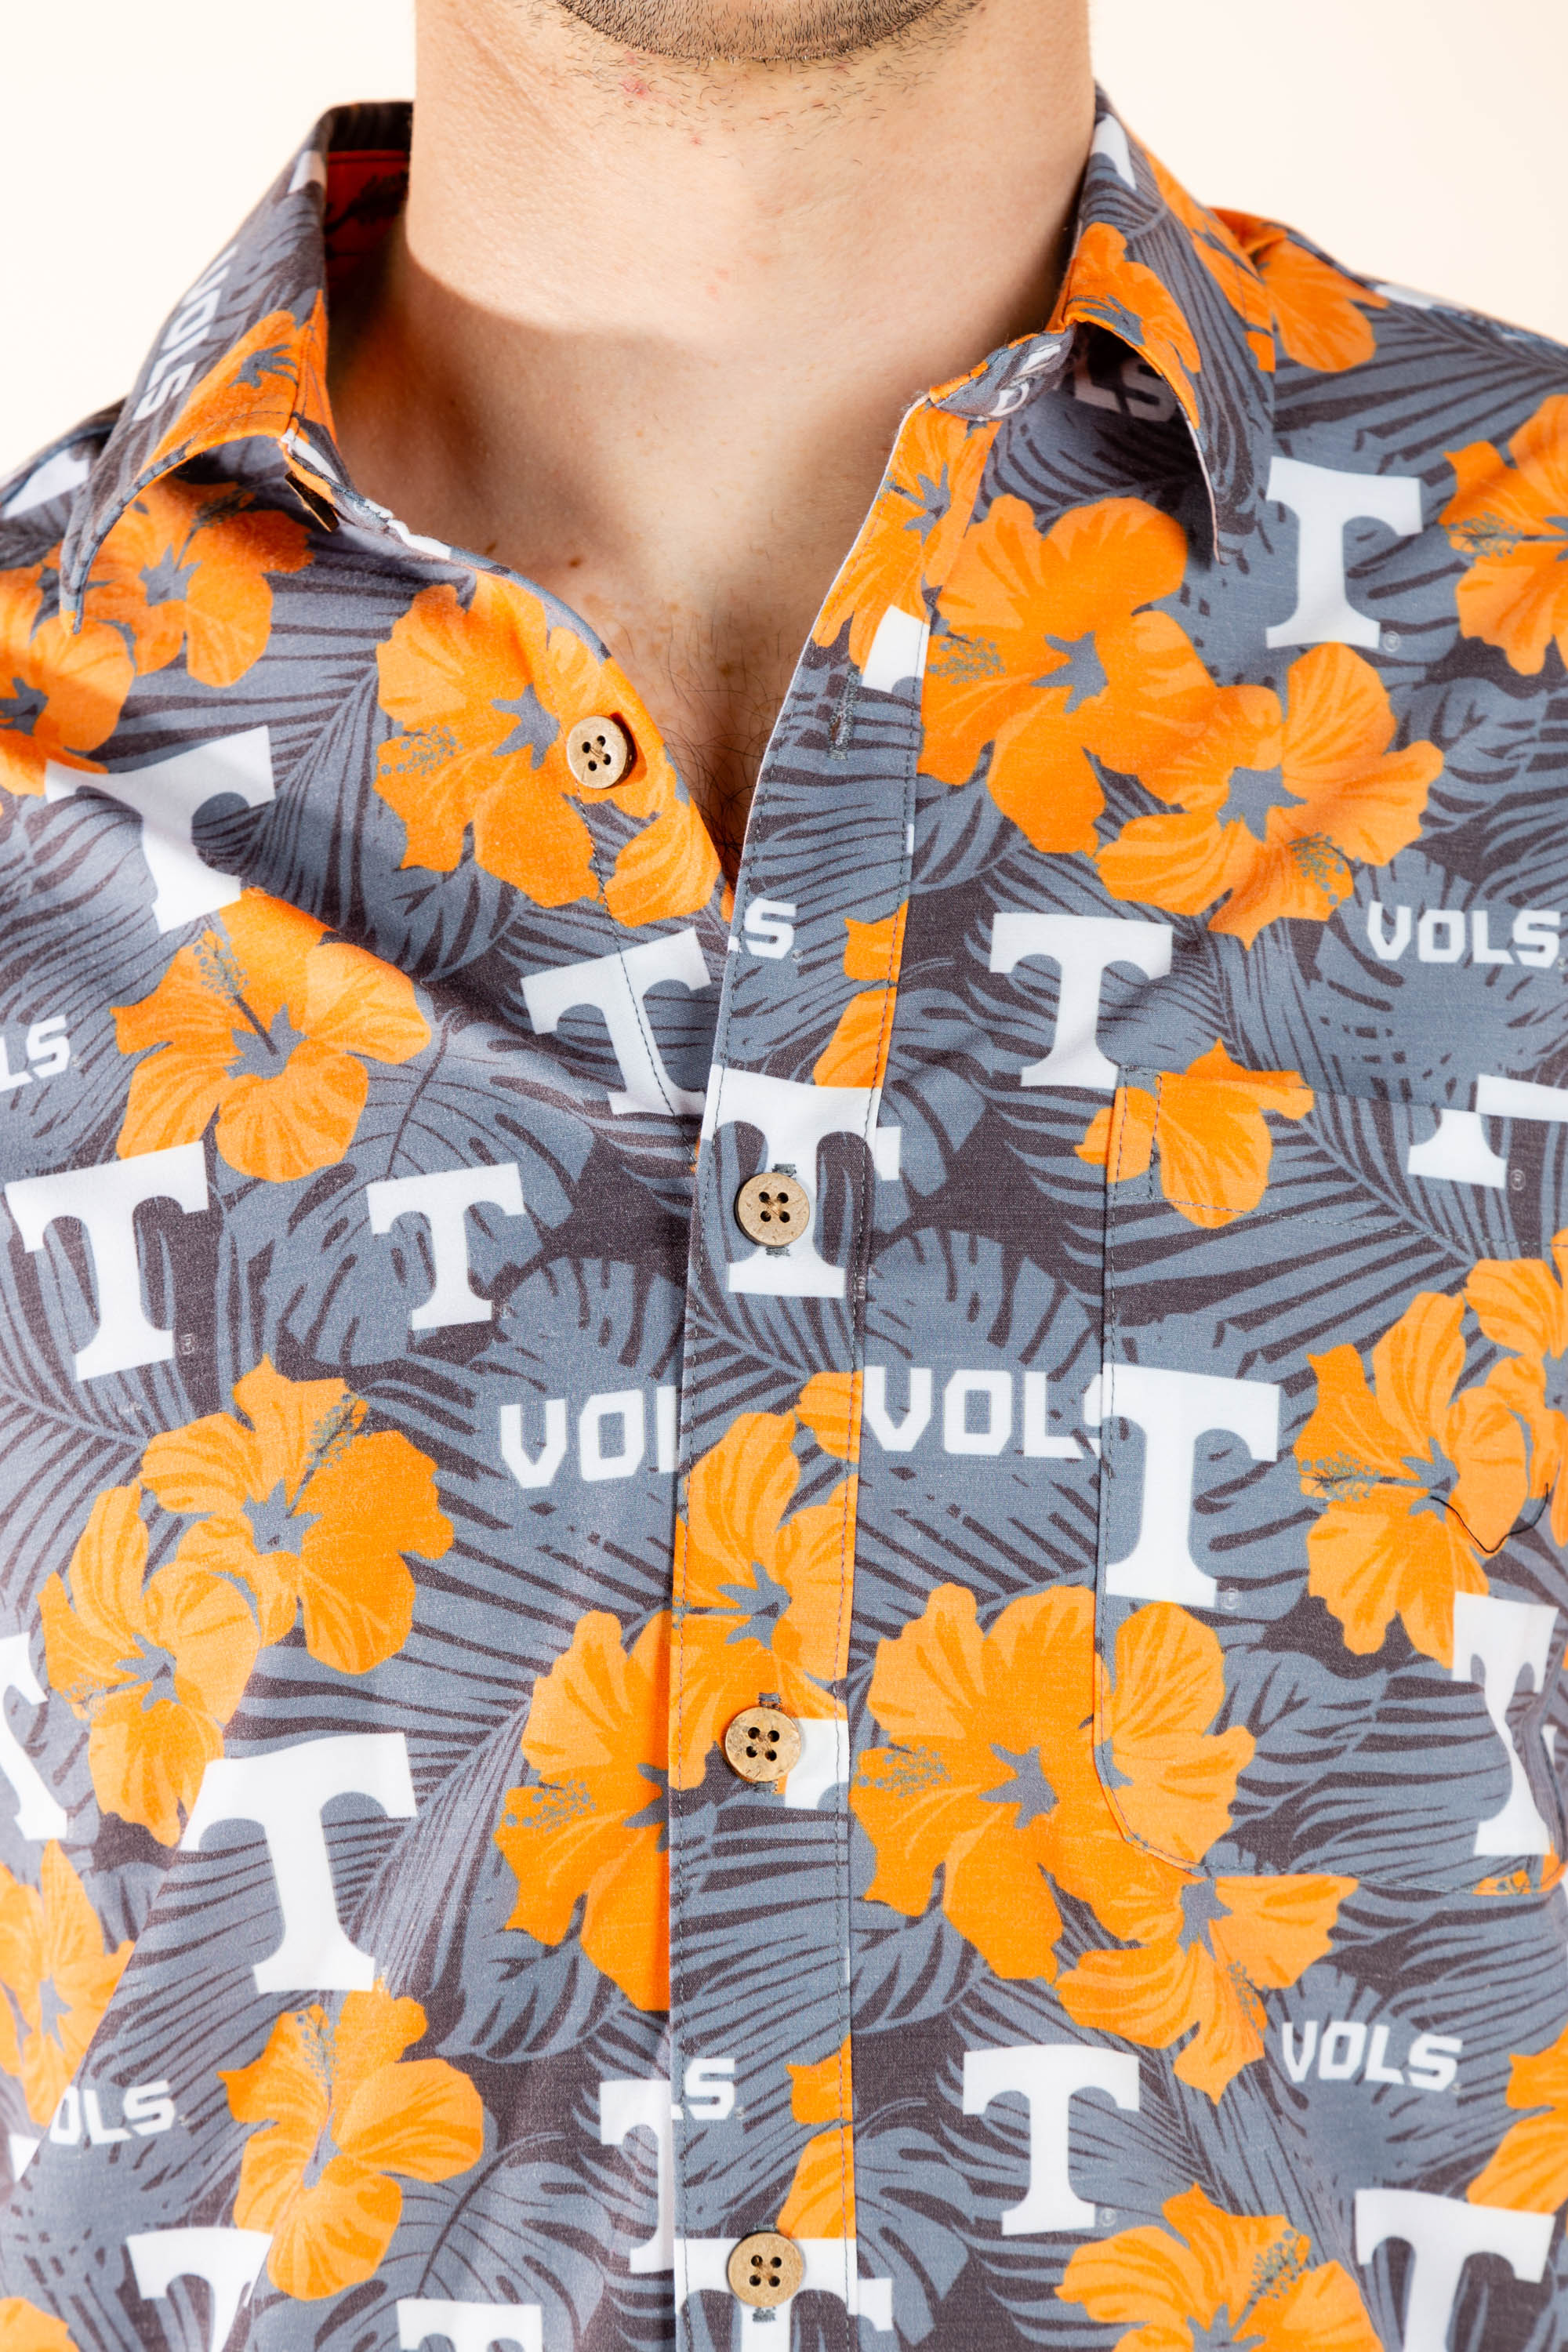 UT Vols Tailgating Party Shirt